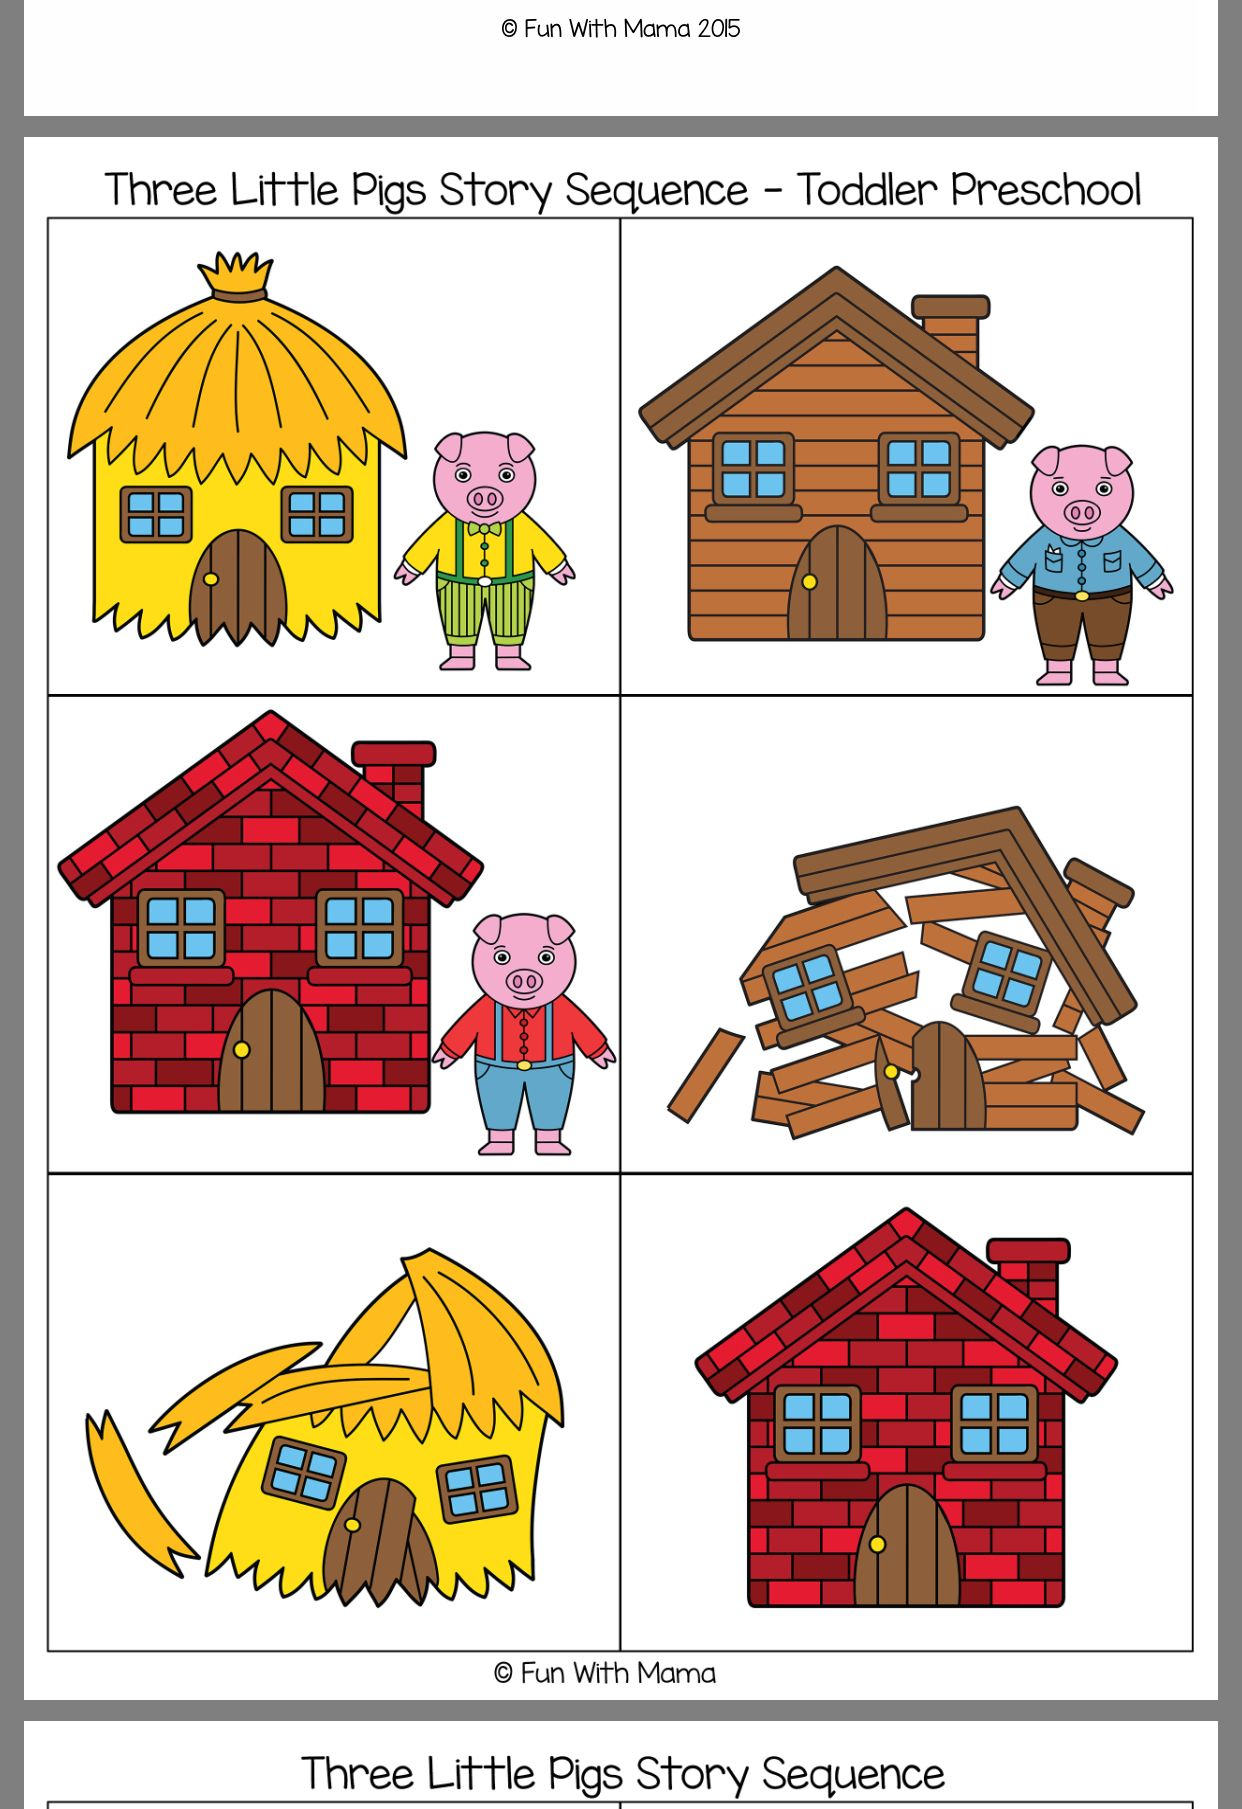 Pin By Theresa Notskas On February Three Little Pigs Educational Crafts Sequencing Cards [ 1809 x 1242 Pixel ]